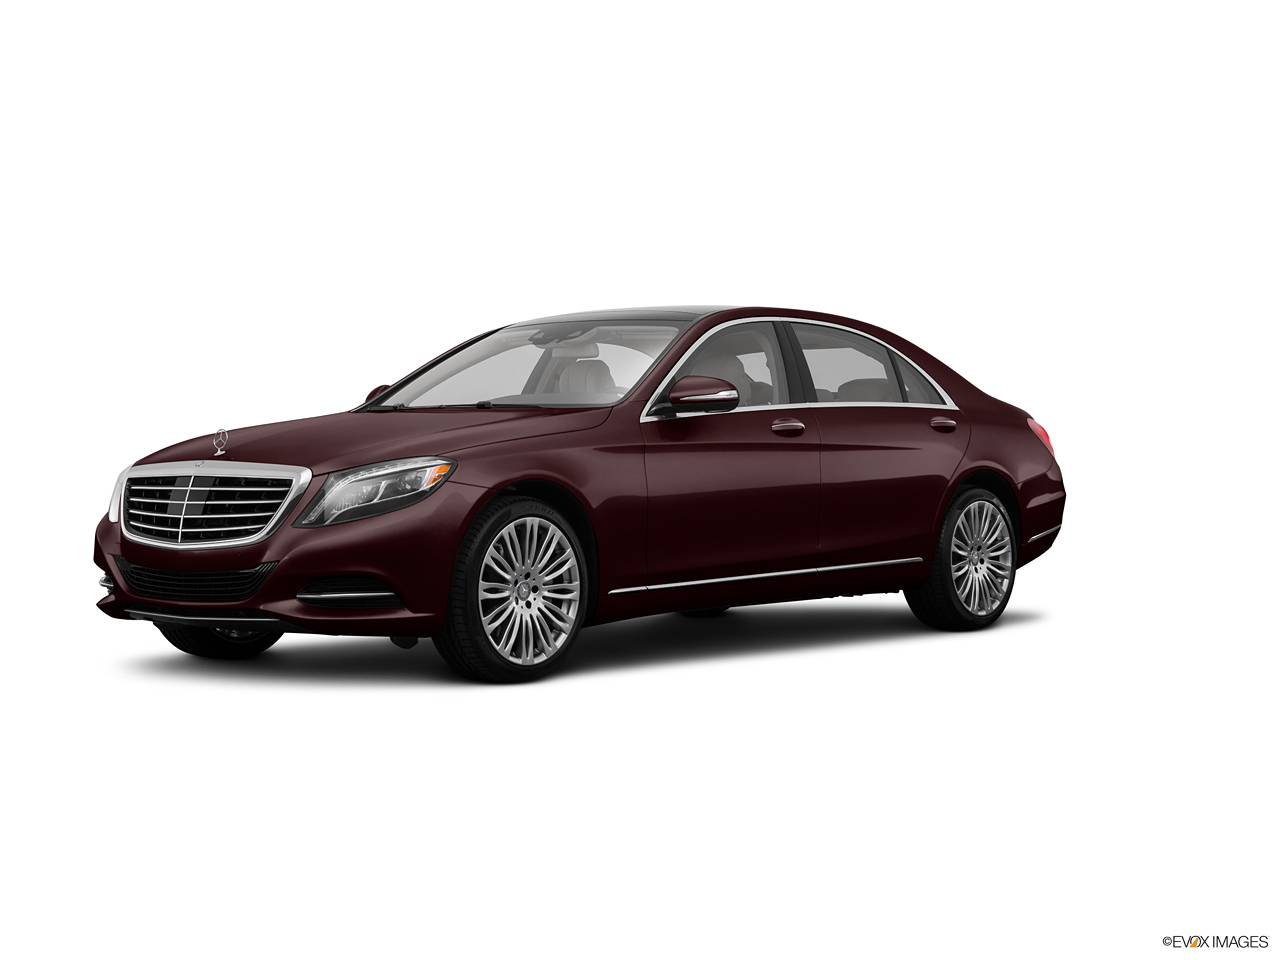 Car pictures list for mercedes benz s class 2016 s 600 l for Mercedes benz classes list